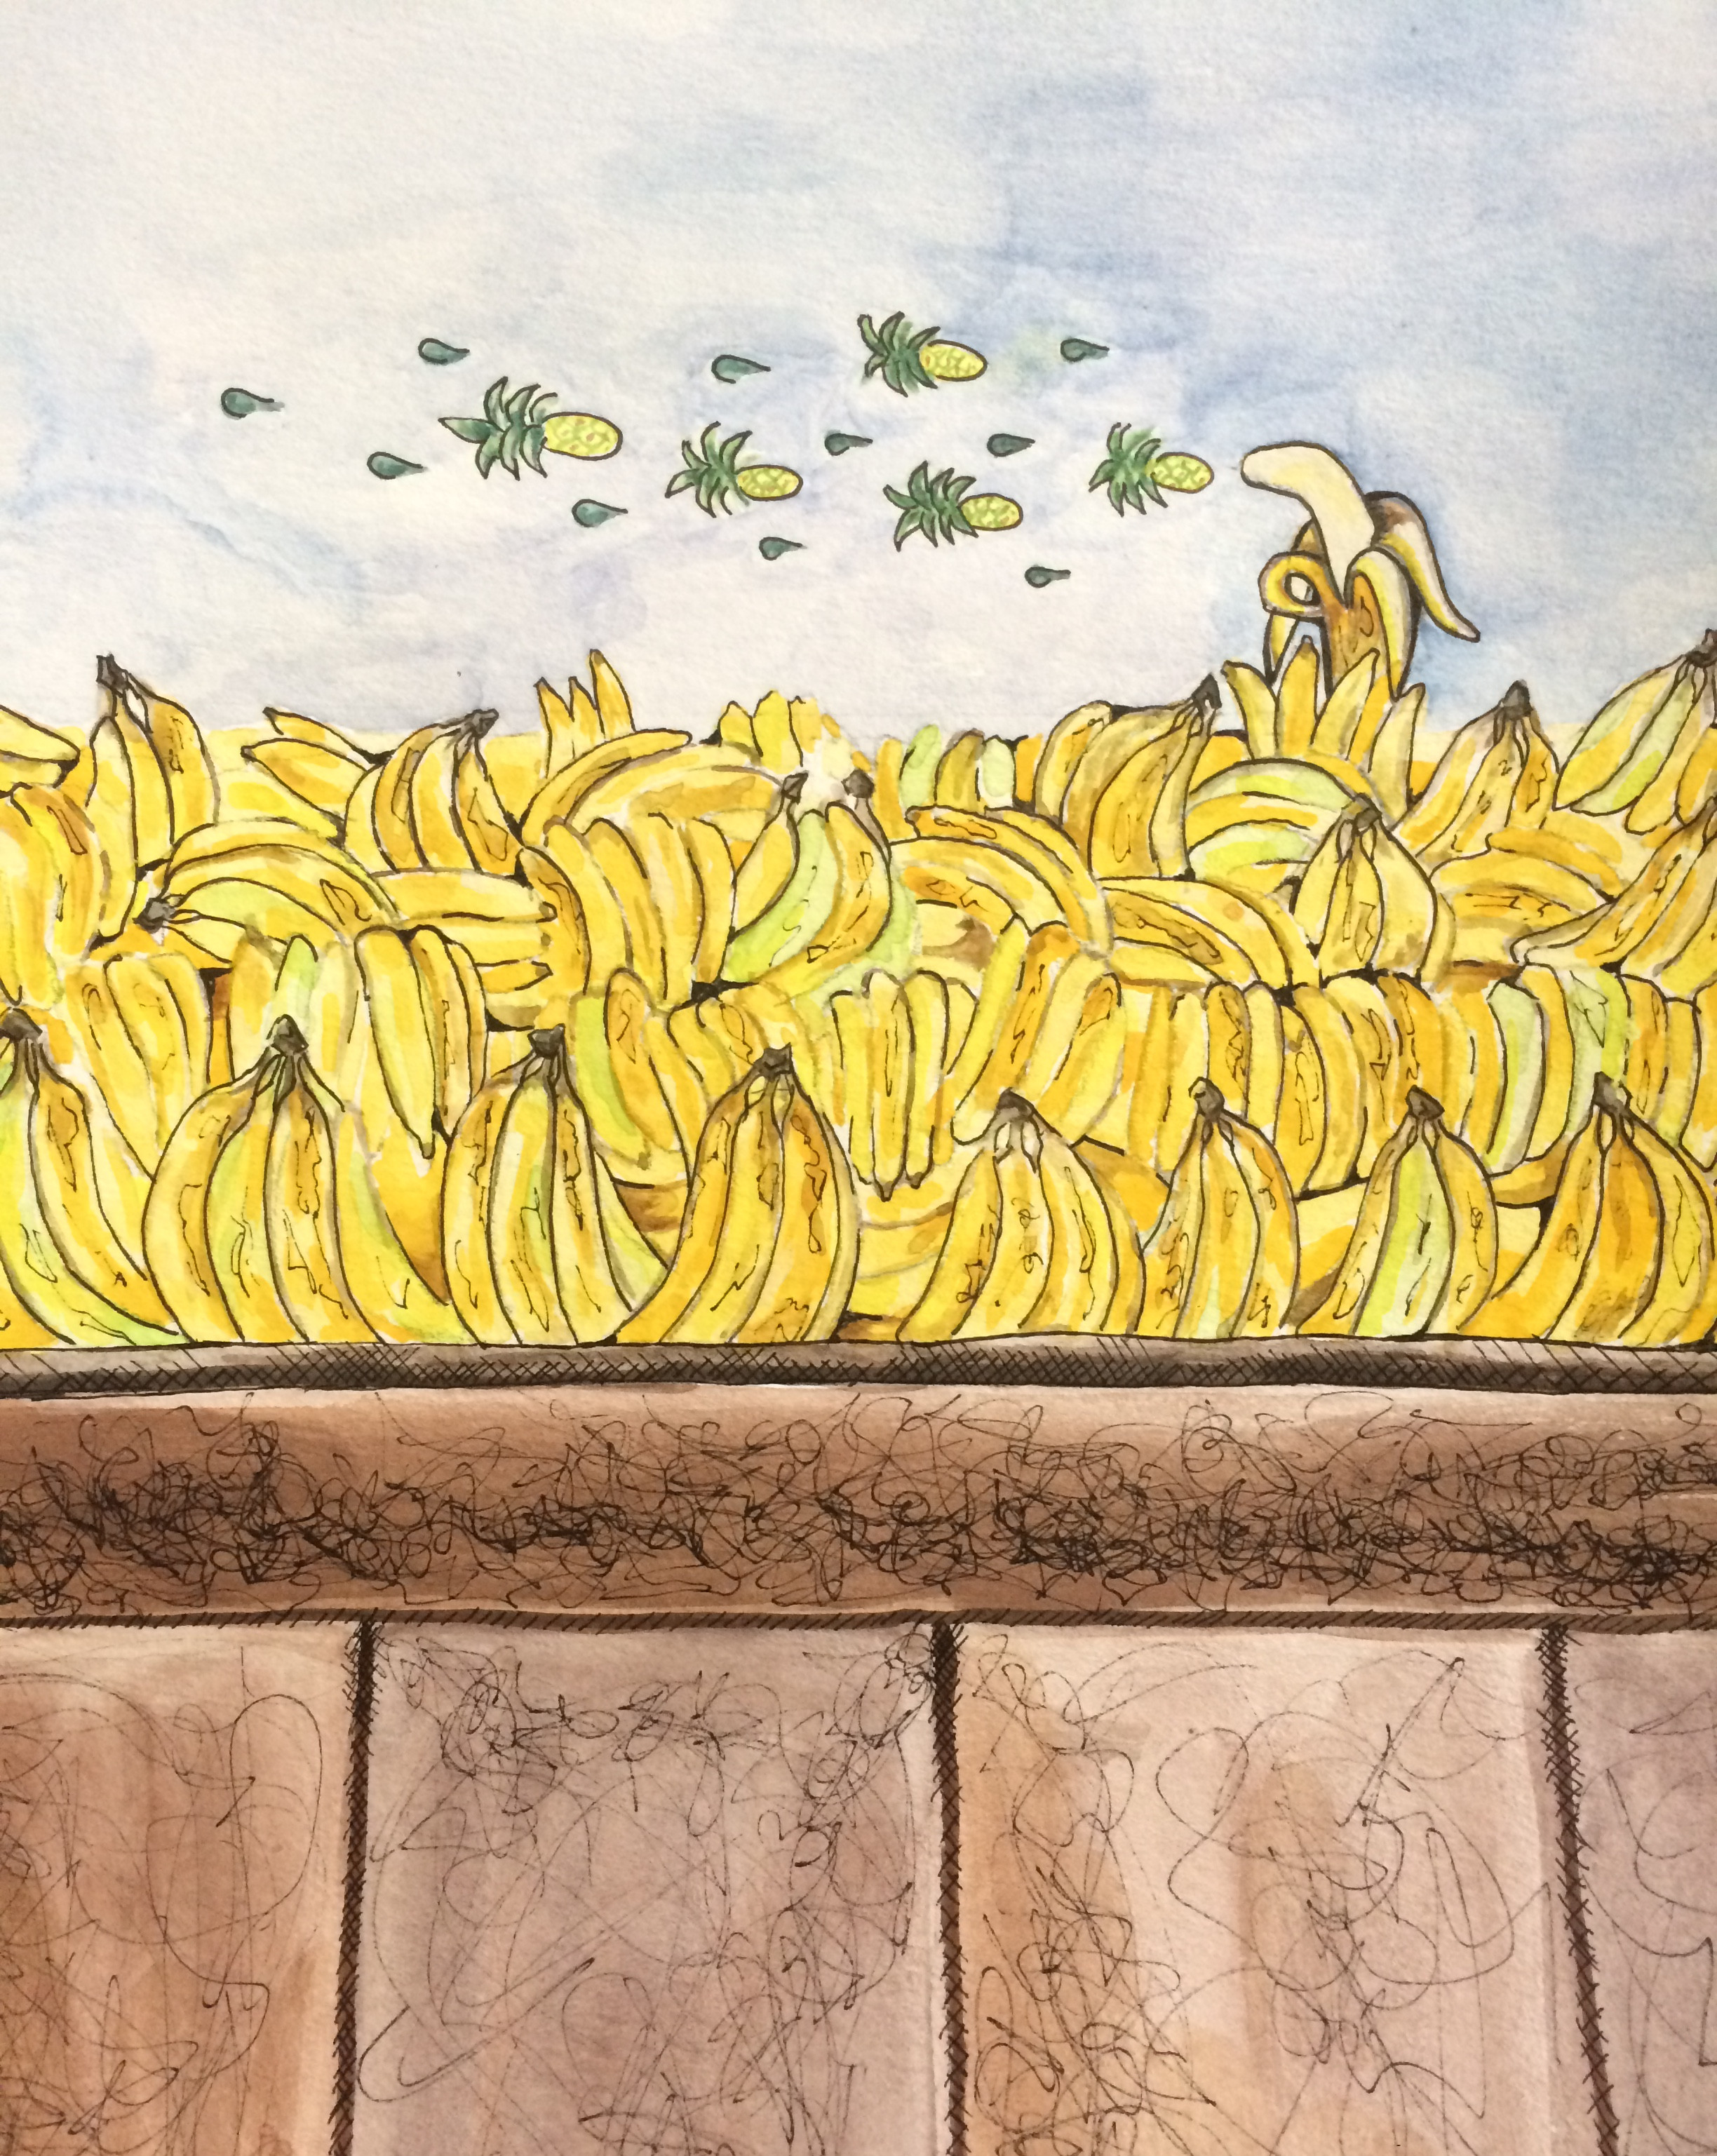 Deanna Dorangrichia ,  Banana Bullets and Pineapple Grenades  (gouache on paper)